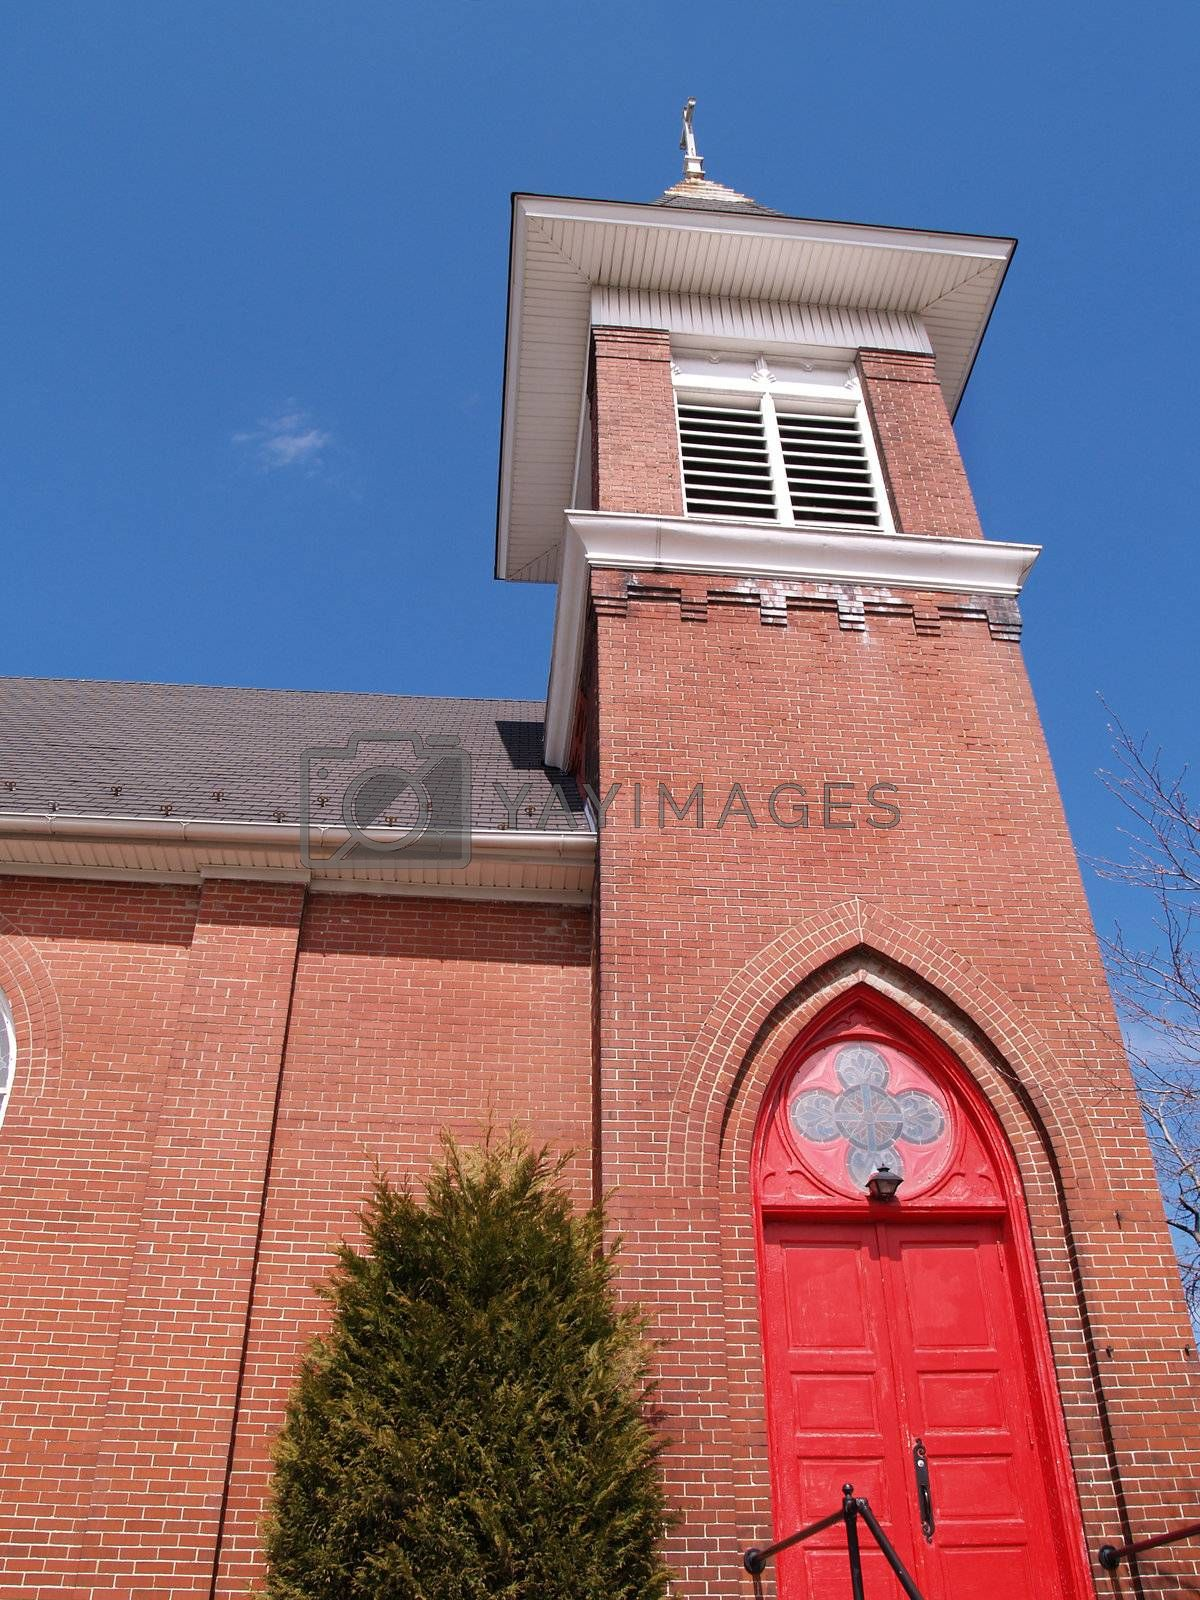 exterior of a red brick church with a red wood door and a blue sky in the background